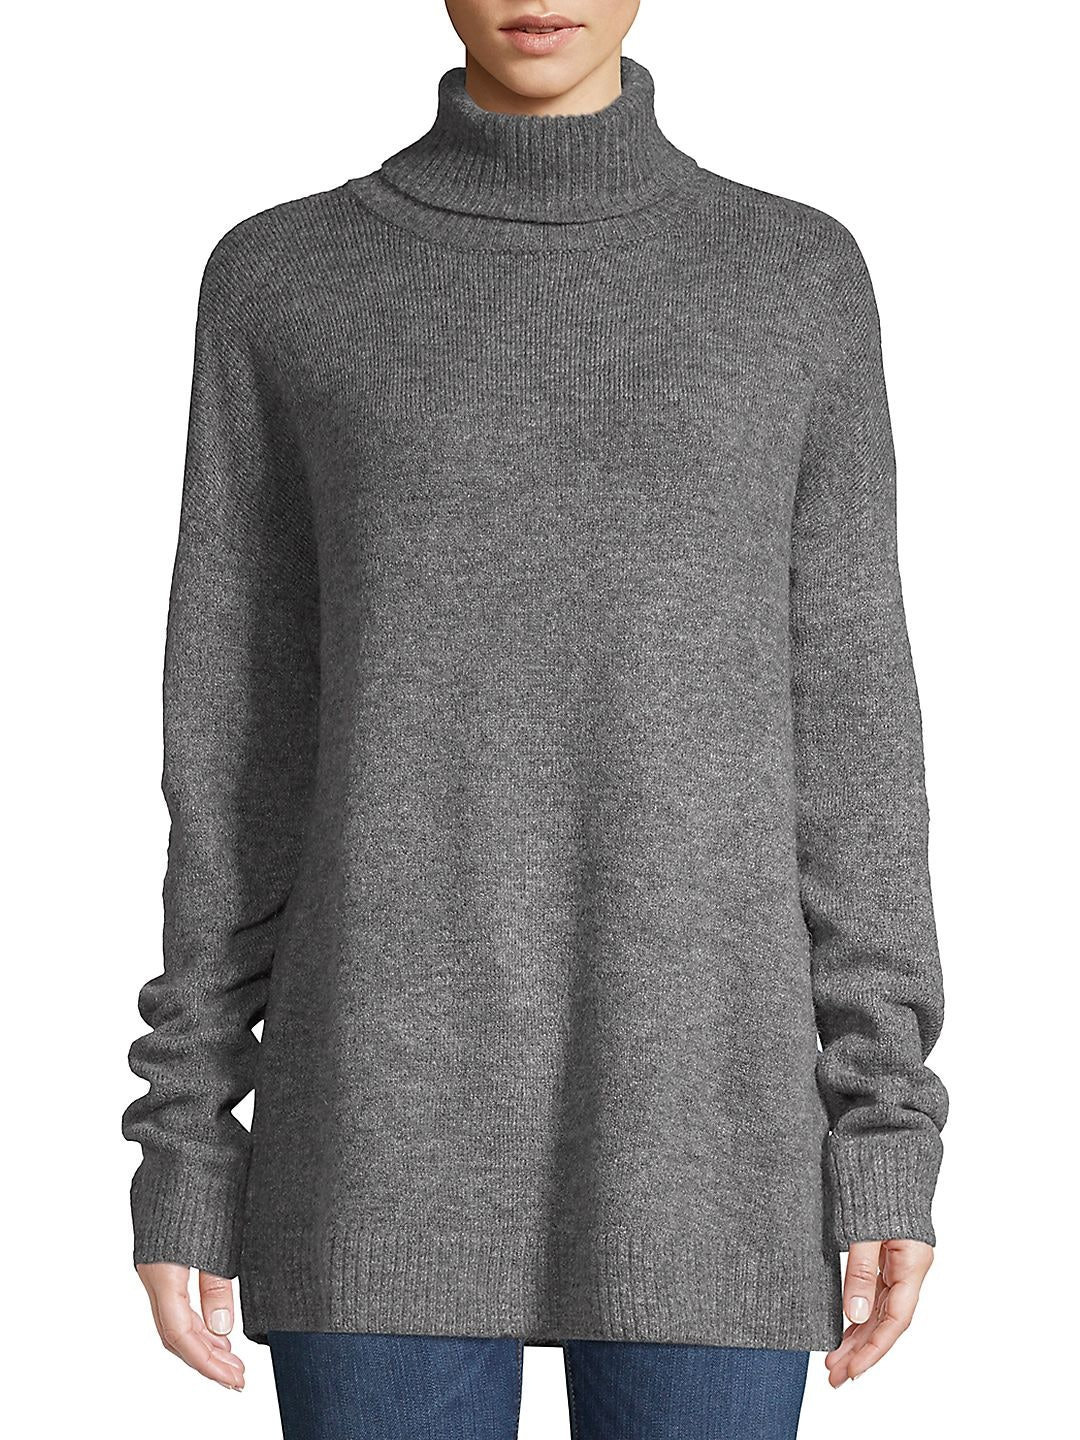 10 Cozy Sweaters On Walmartcom That Are Perfect For Sweater Weather